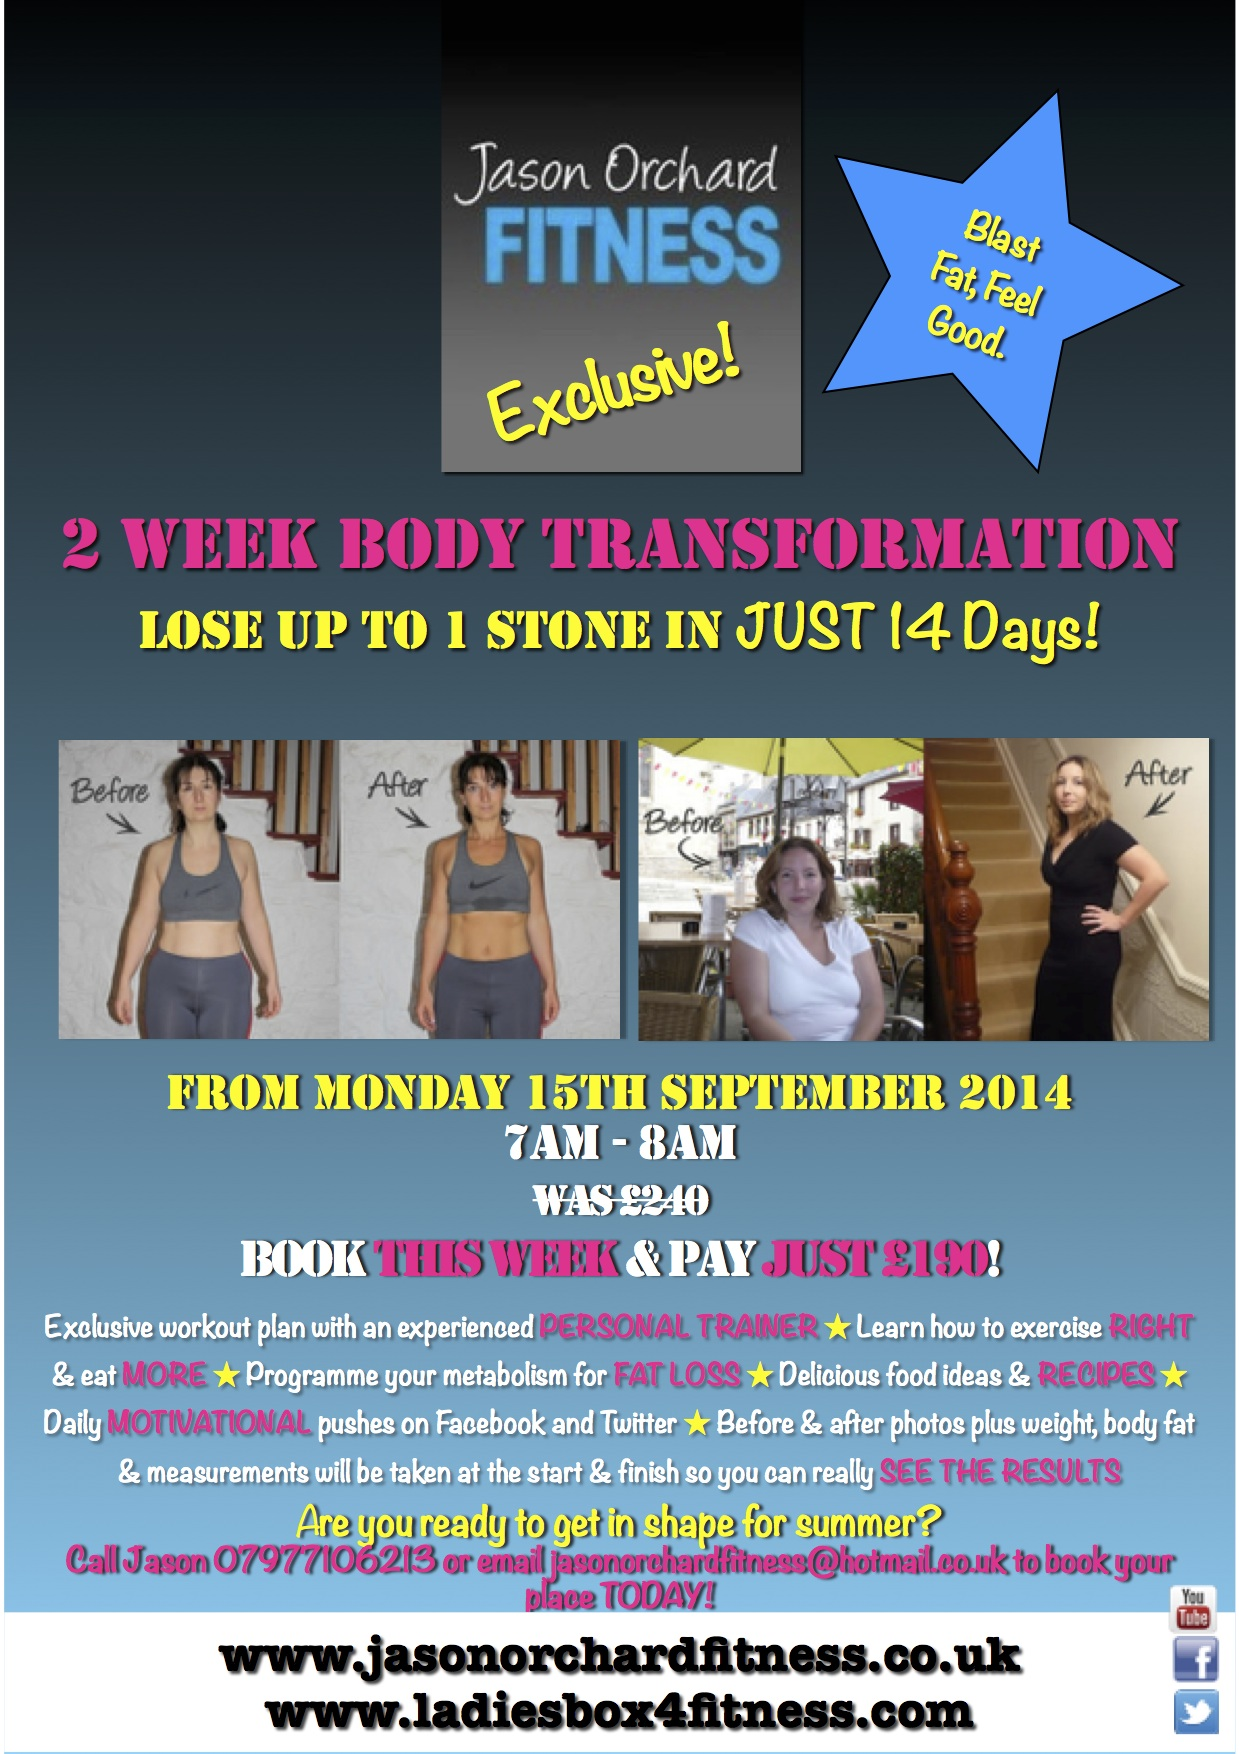 2 Week Body Transformation. Jason Orchard 10 Day Summer Belly Bootcamp May  2014 copy